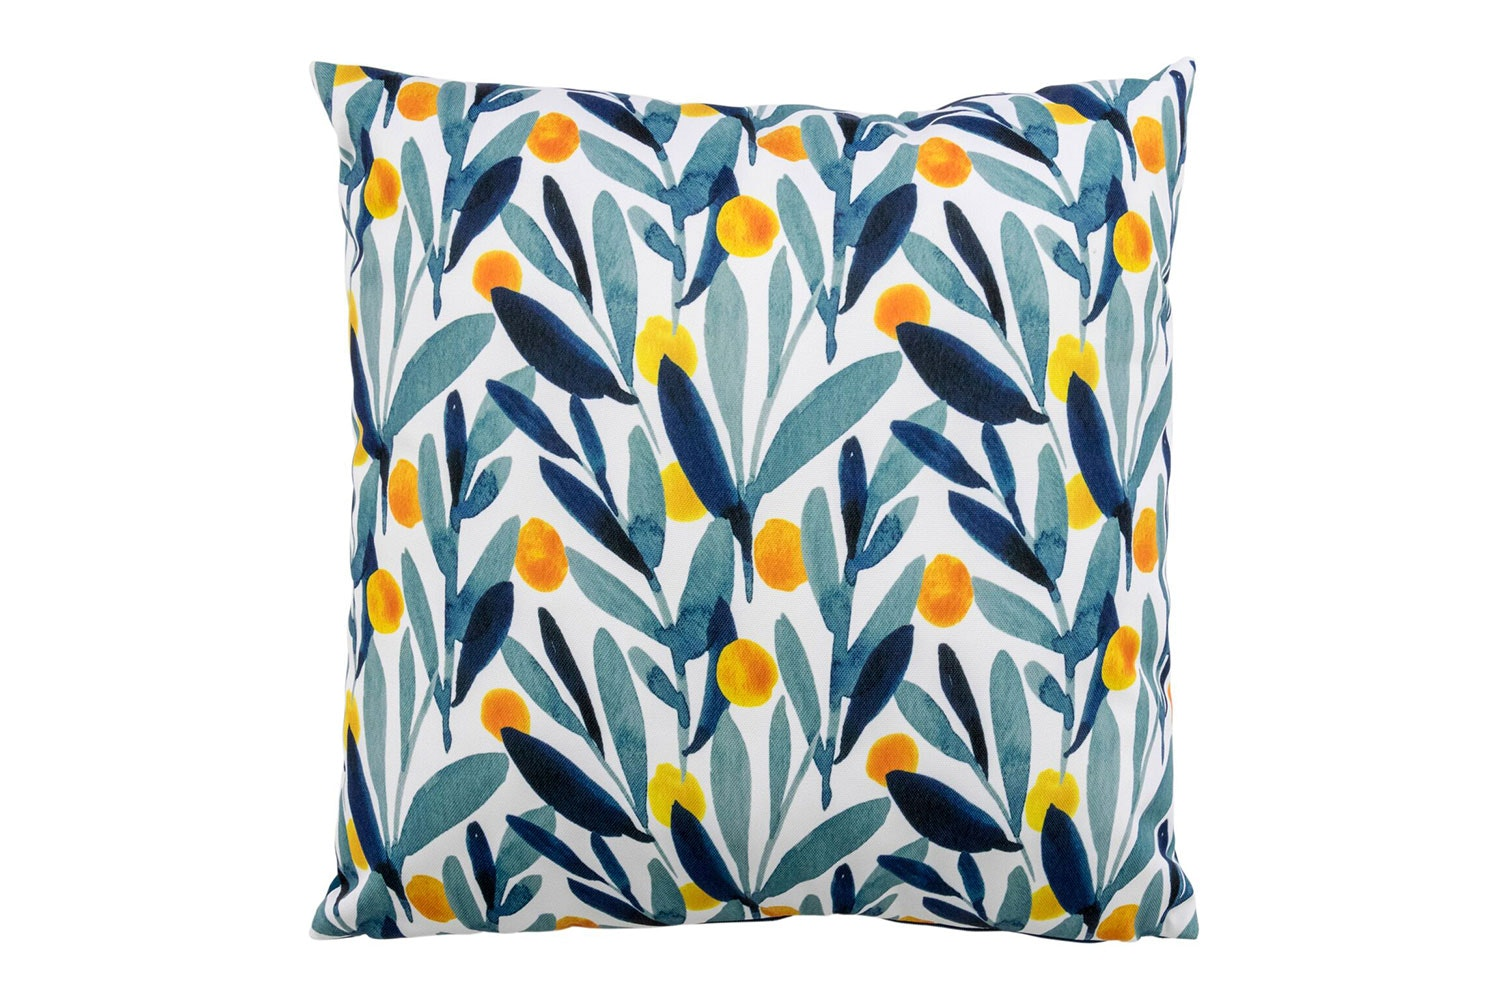 Leaf Print Outdoor Cushion by Kerridge